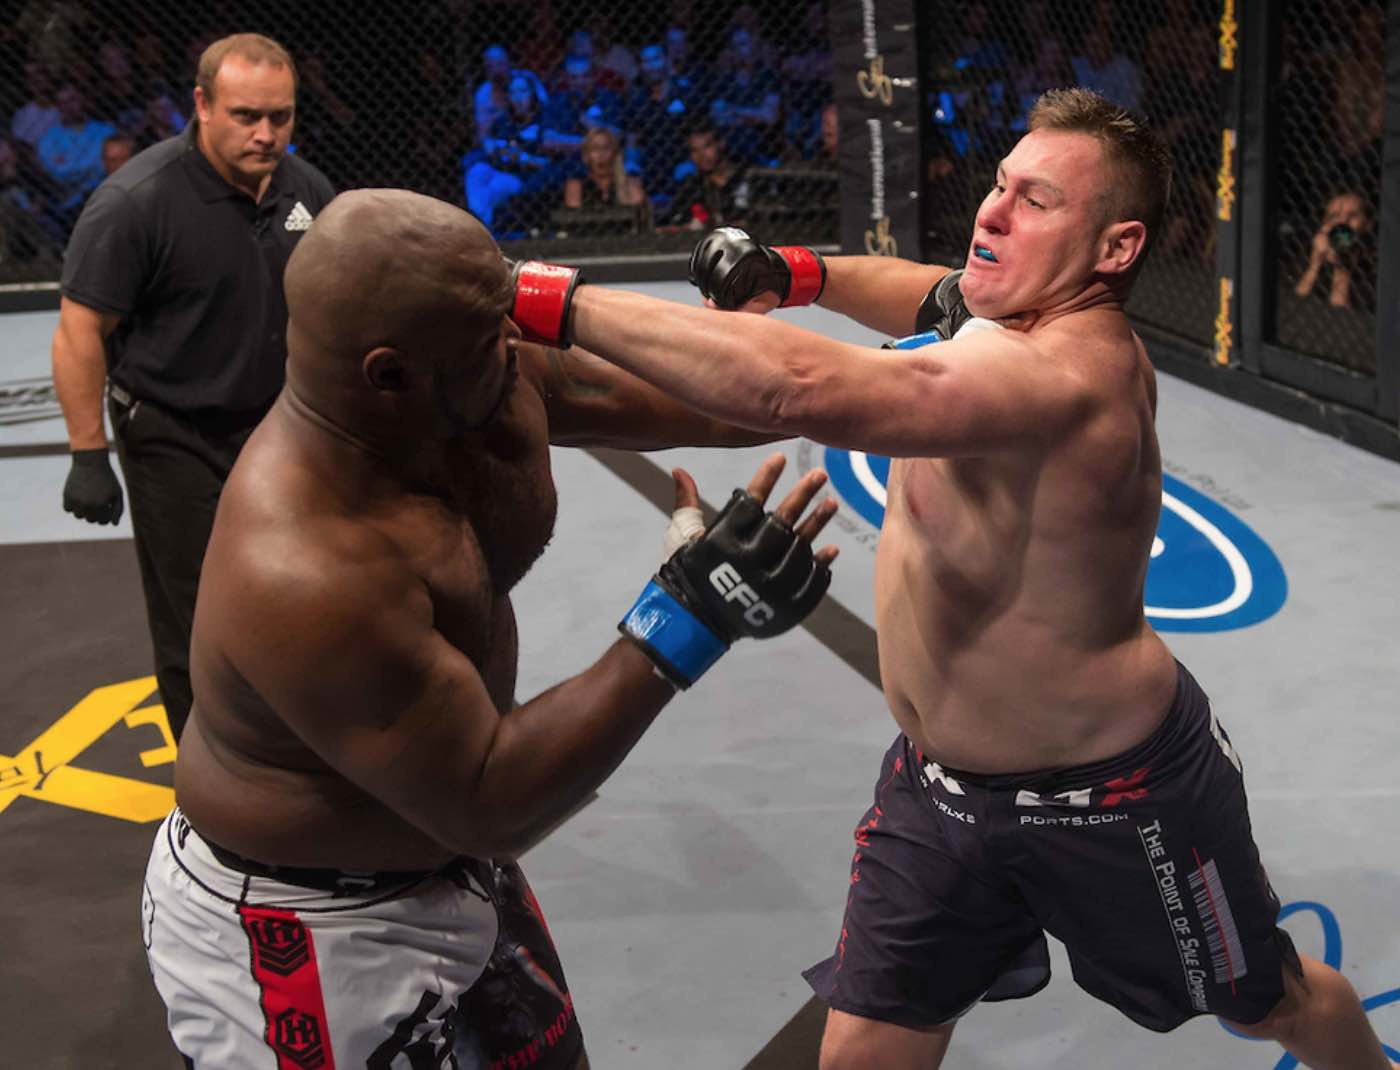 Michael Vermeulen vs Elvis Moyo